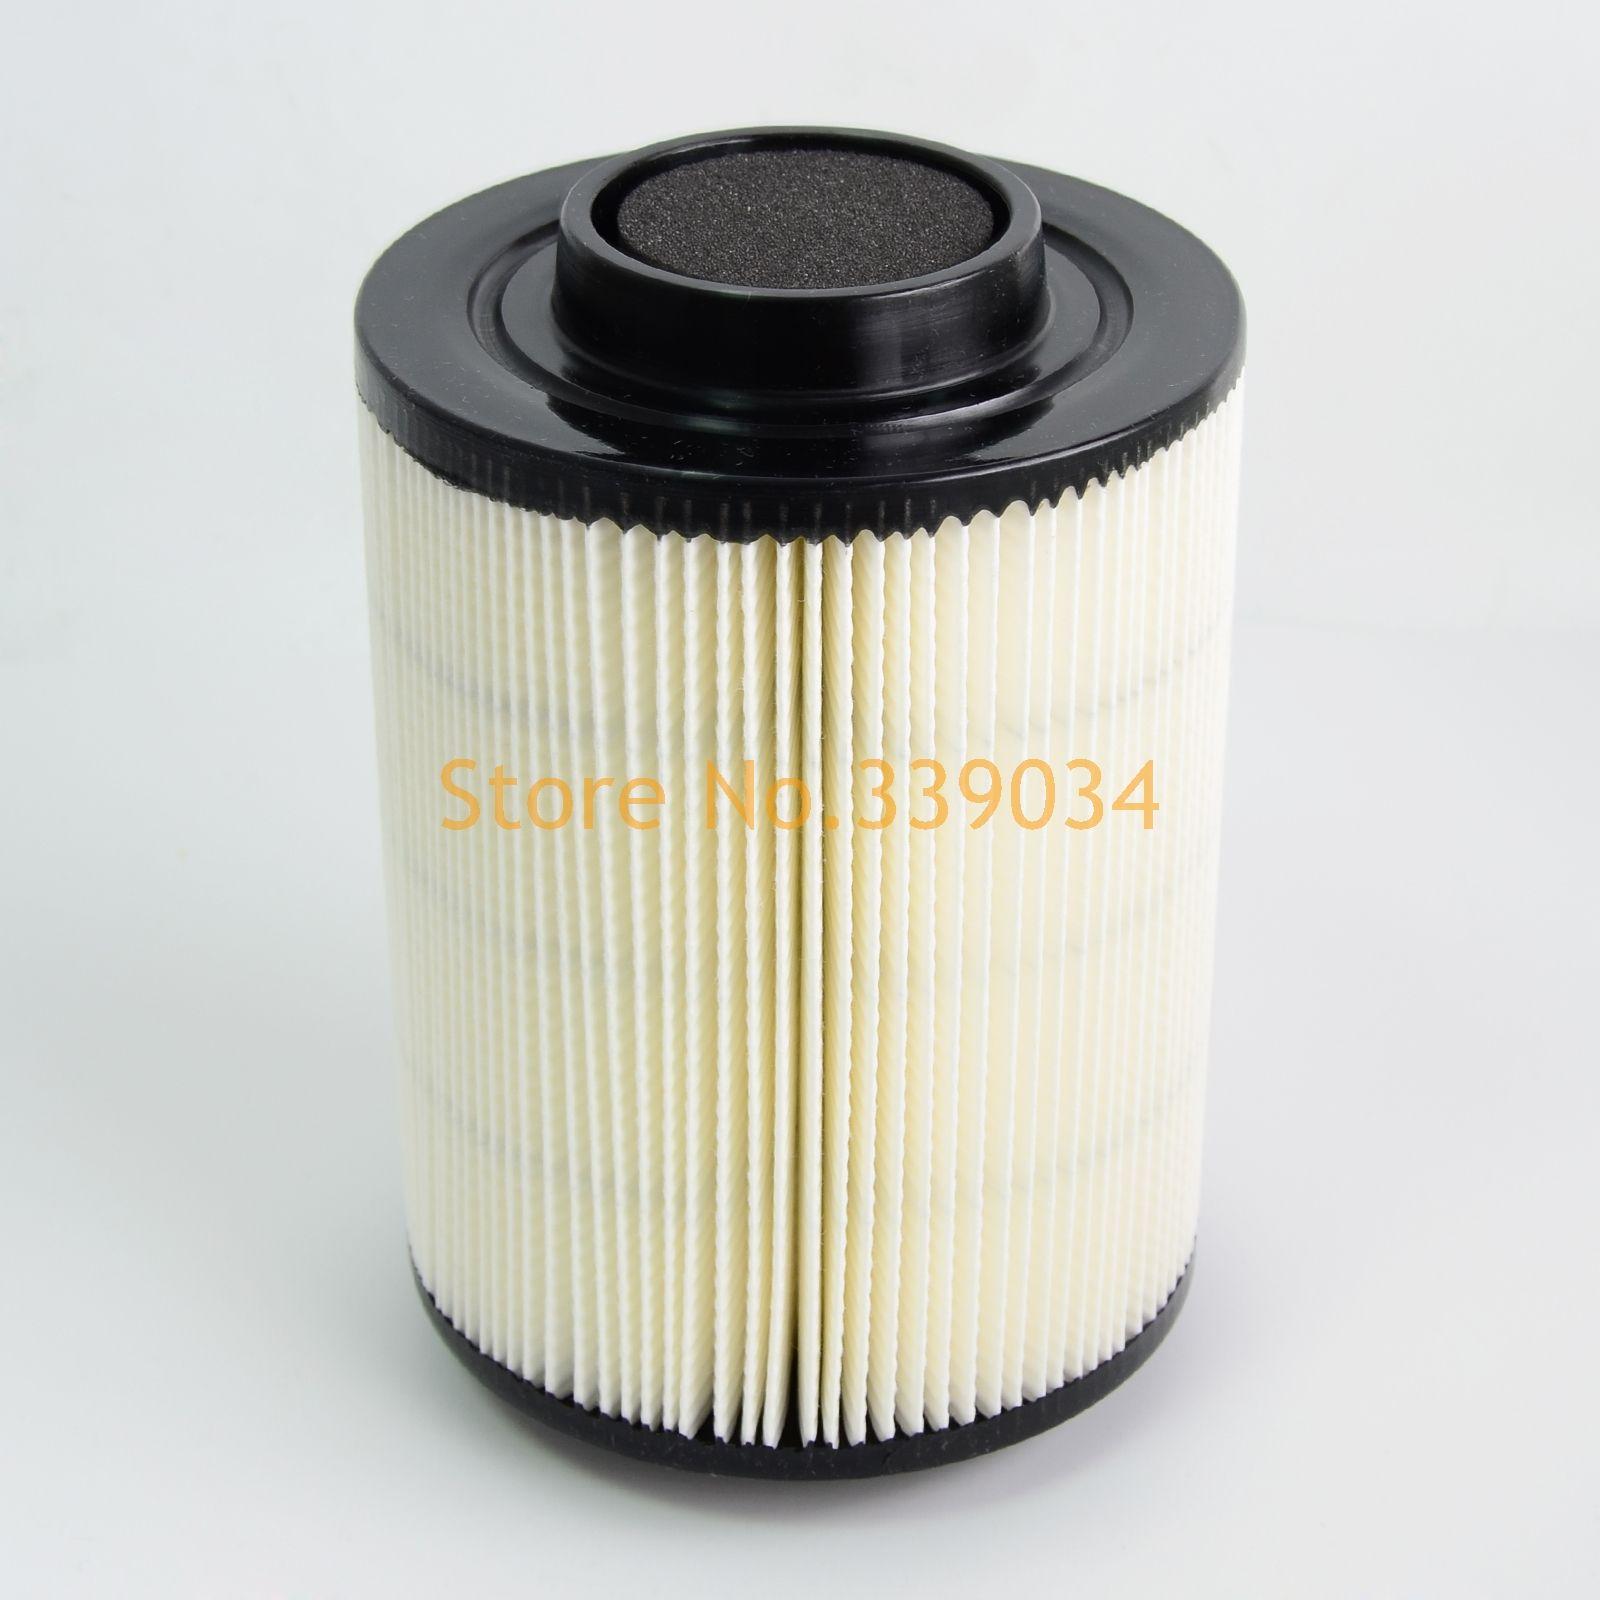 check discount motorcycle air filter cleaner for polaris ranger 800 rzr 4 rzr 800 le efi eps 2009 2011 polaris rzr 800 [ 1600 x 1600 Pixel ]